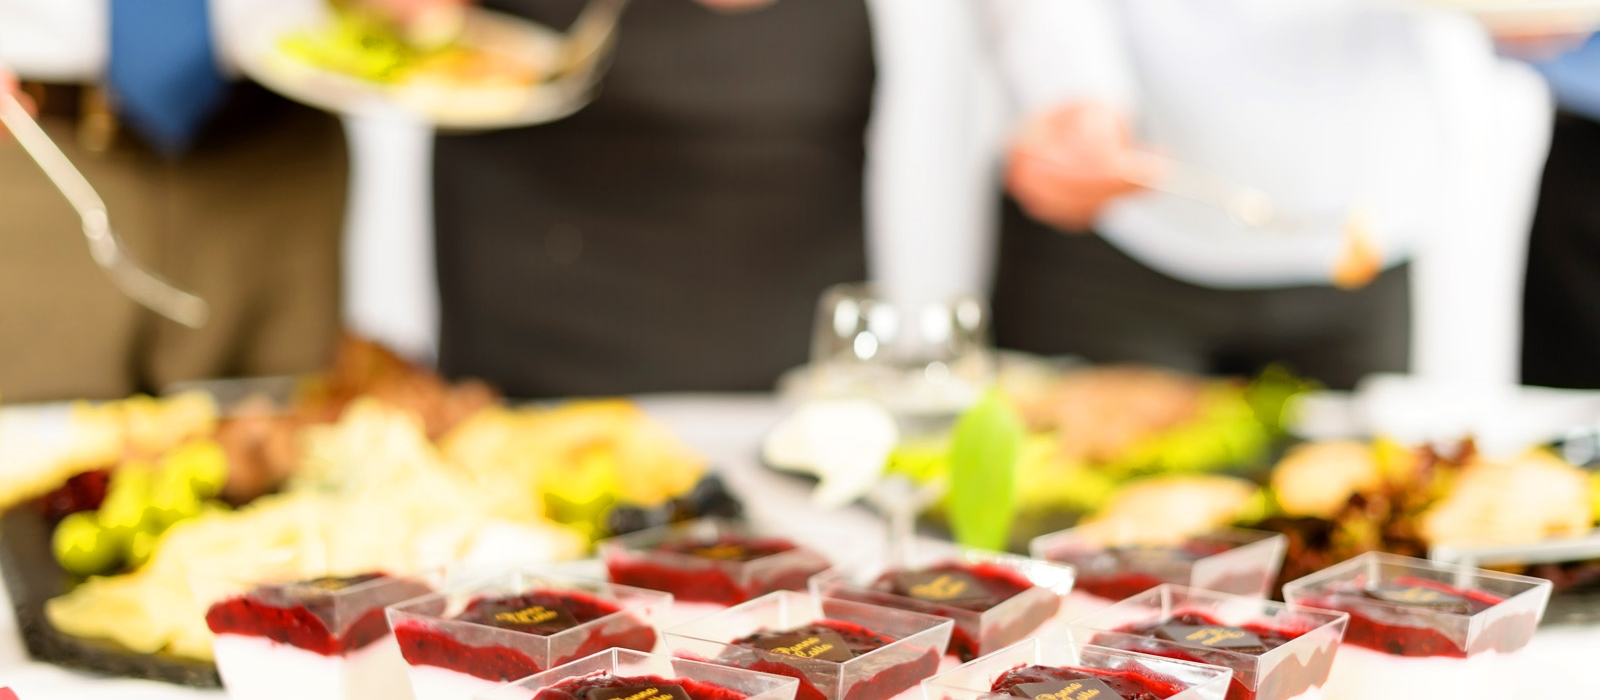 Services Hotel Vincci Almería Wellness - Buffet Restaurant St. Andrews